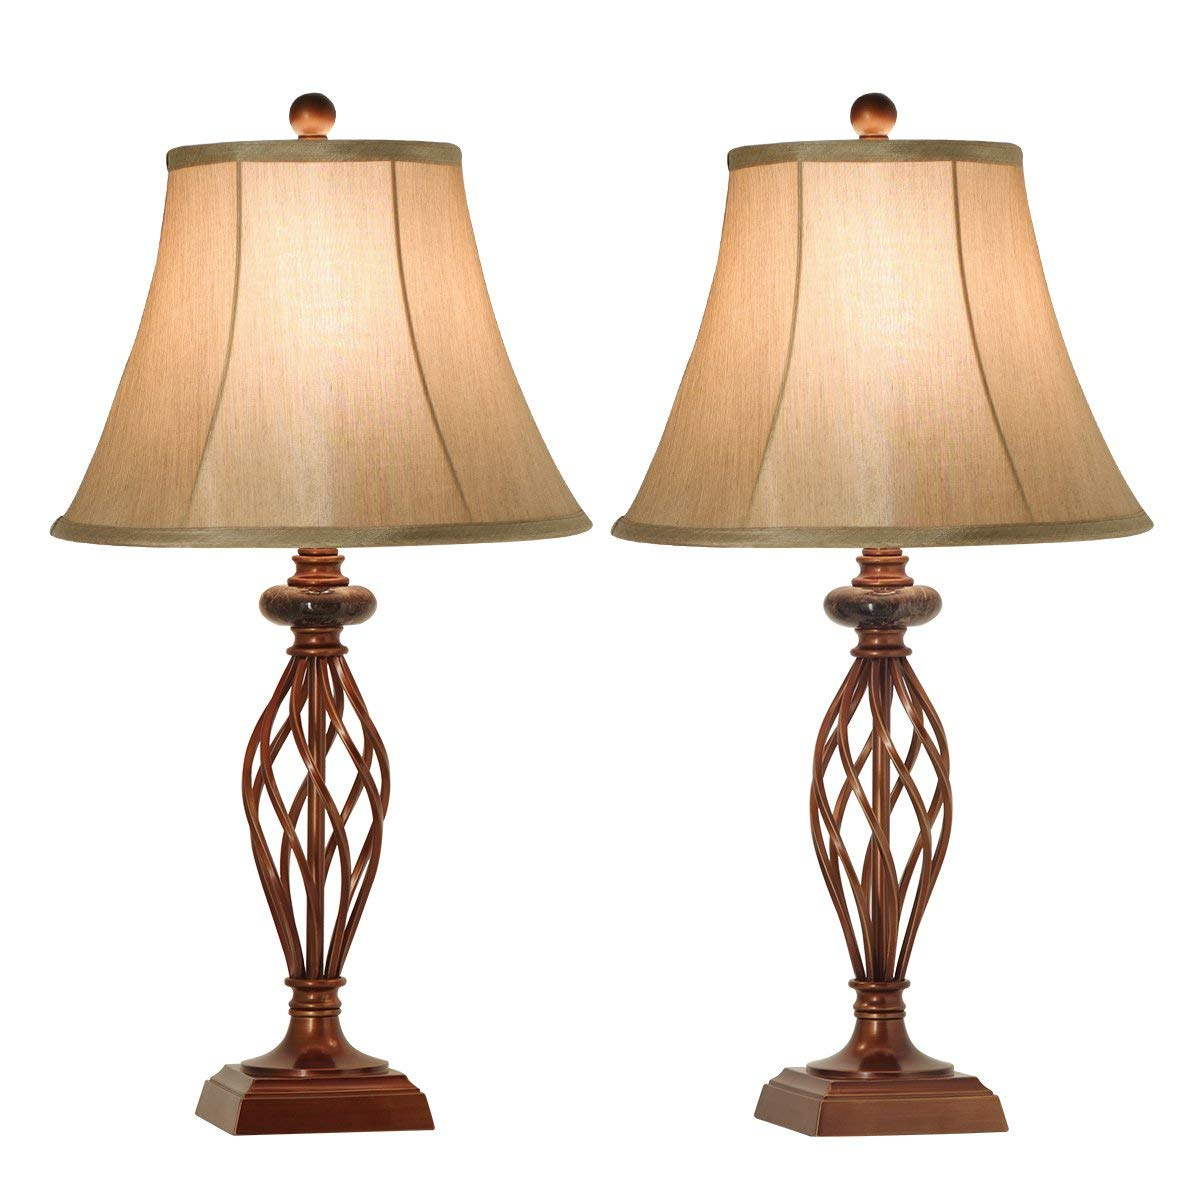 Cheap Bronze Table Lamps For Living Room, find Bronze Table ...